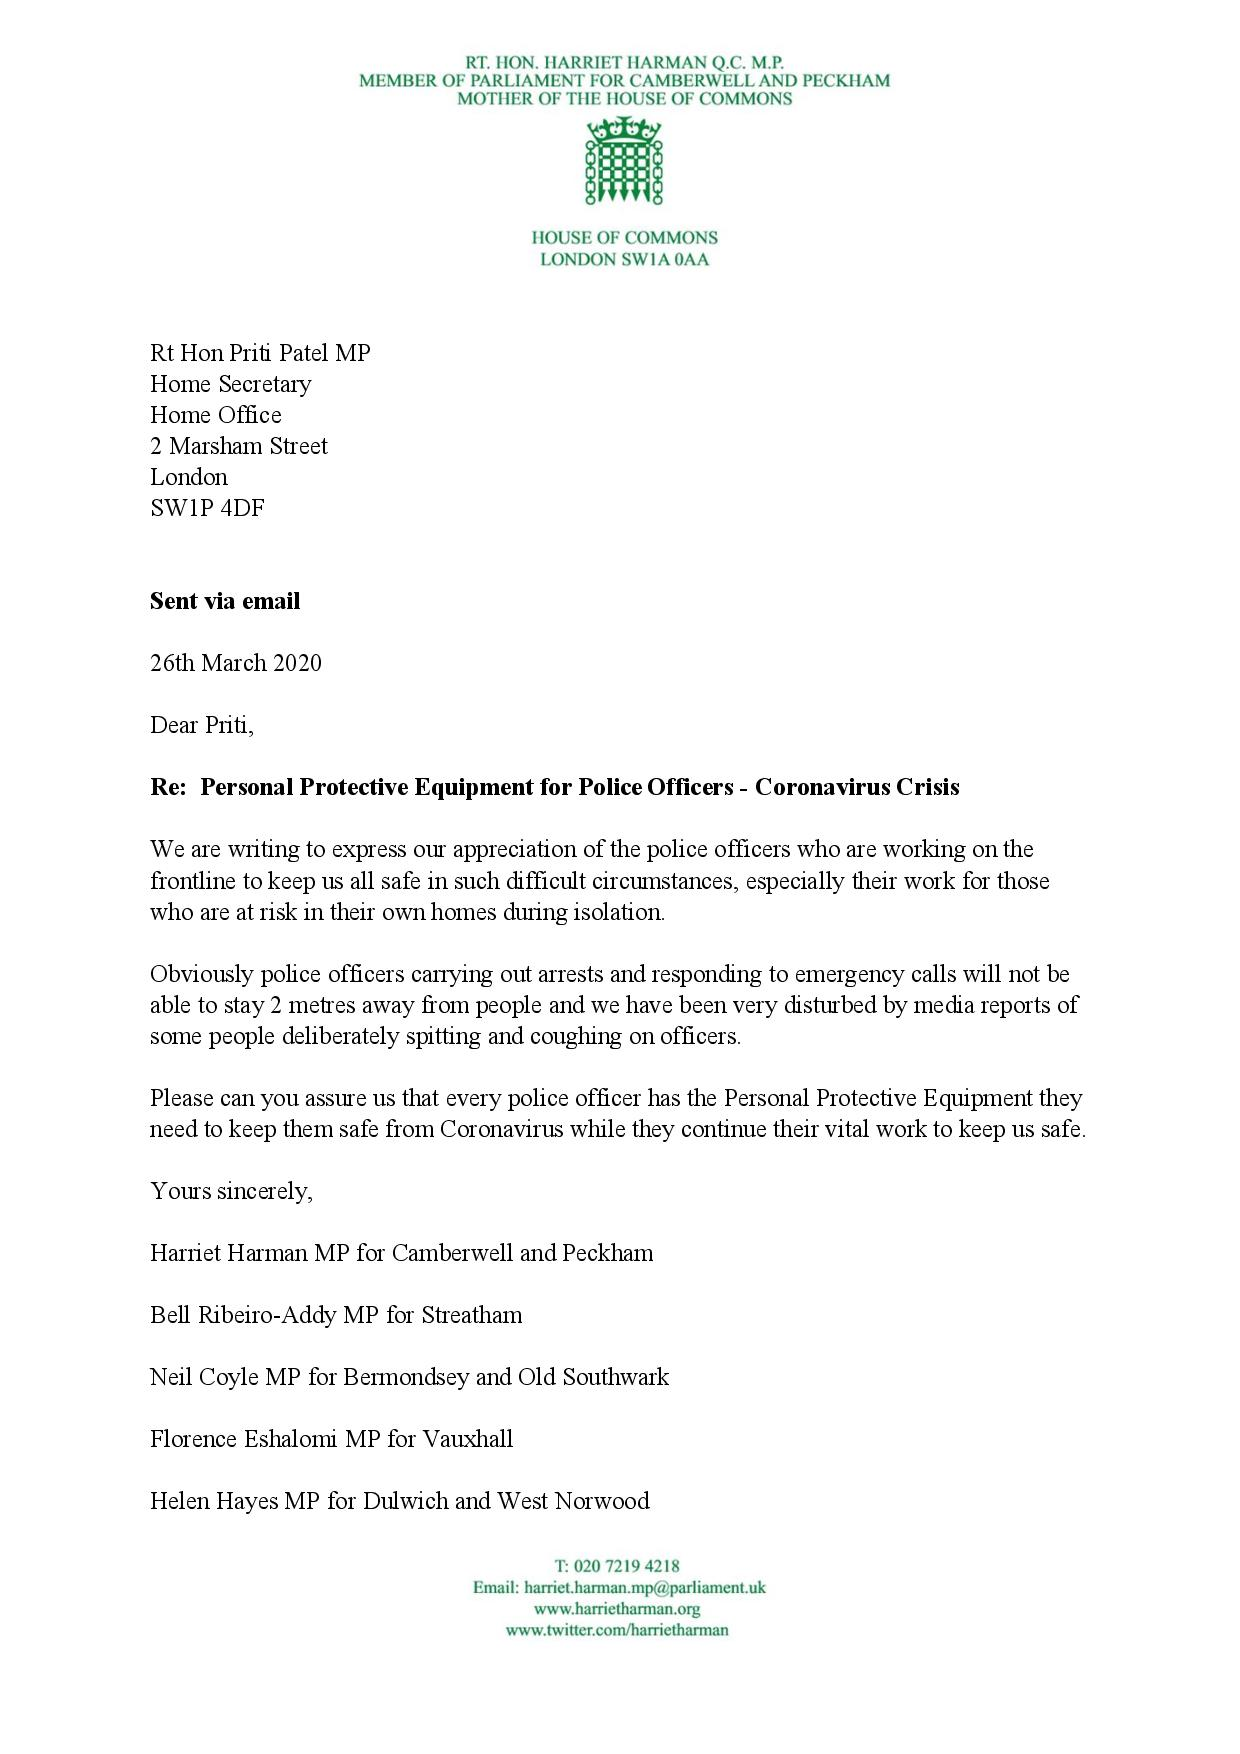 Letter_to_Rt_Hon_Priti_Patel_MP__Home_Secretary_26.03.2020-page-001.jpg